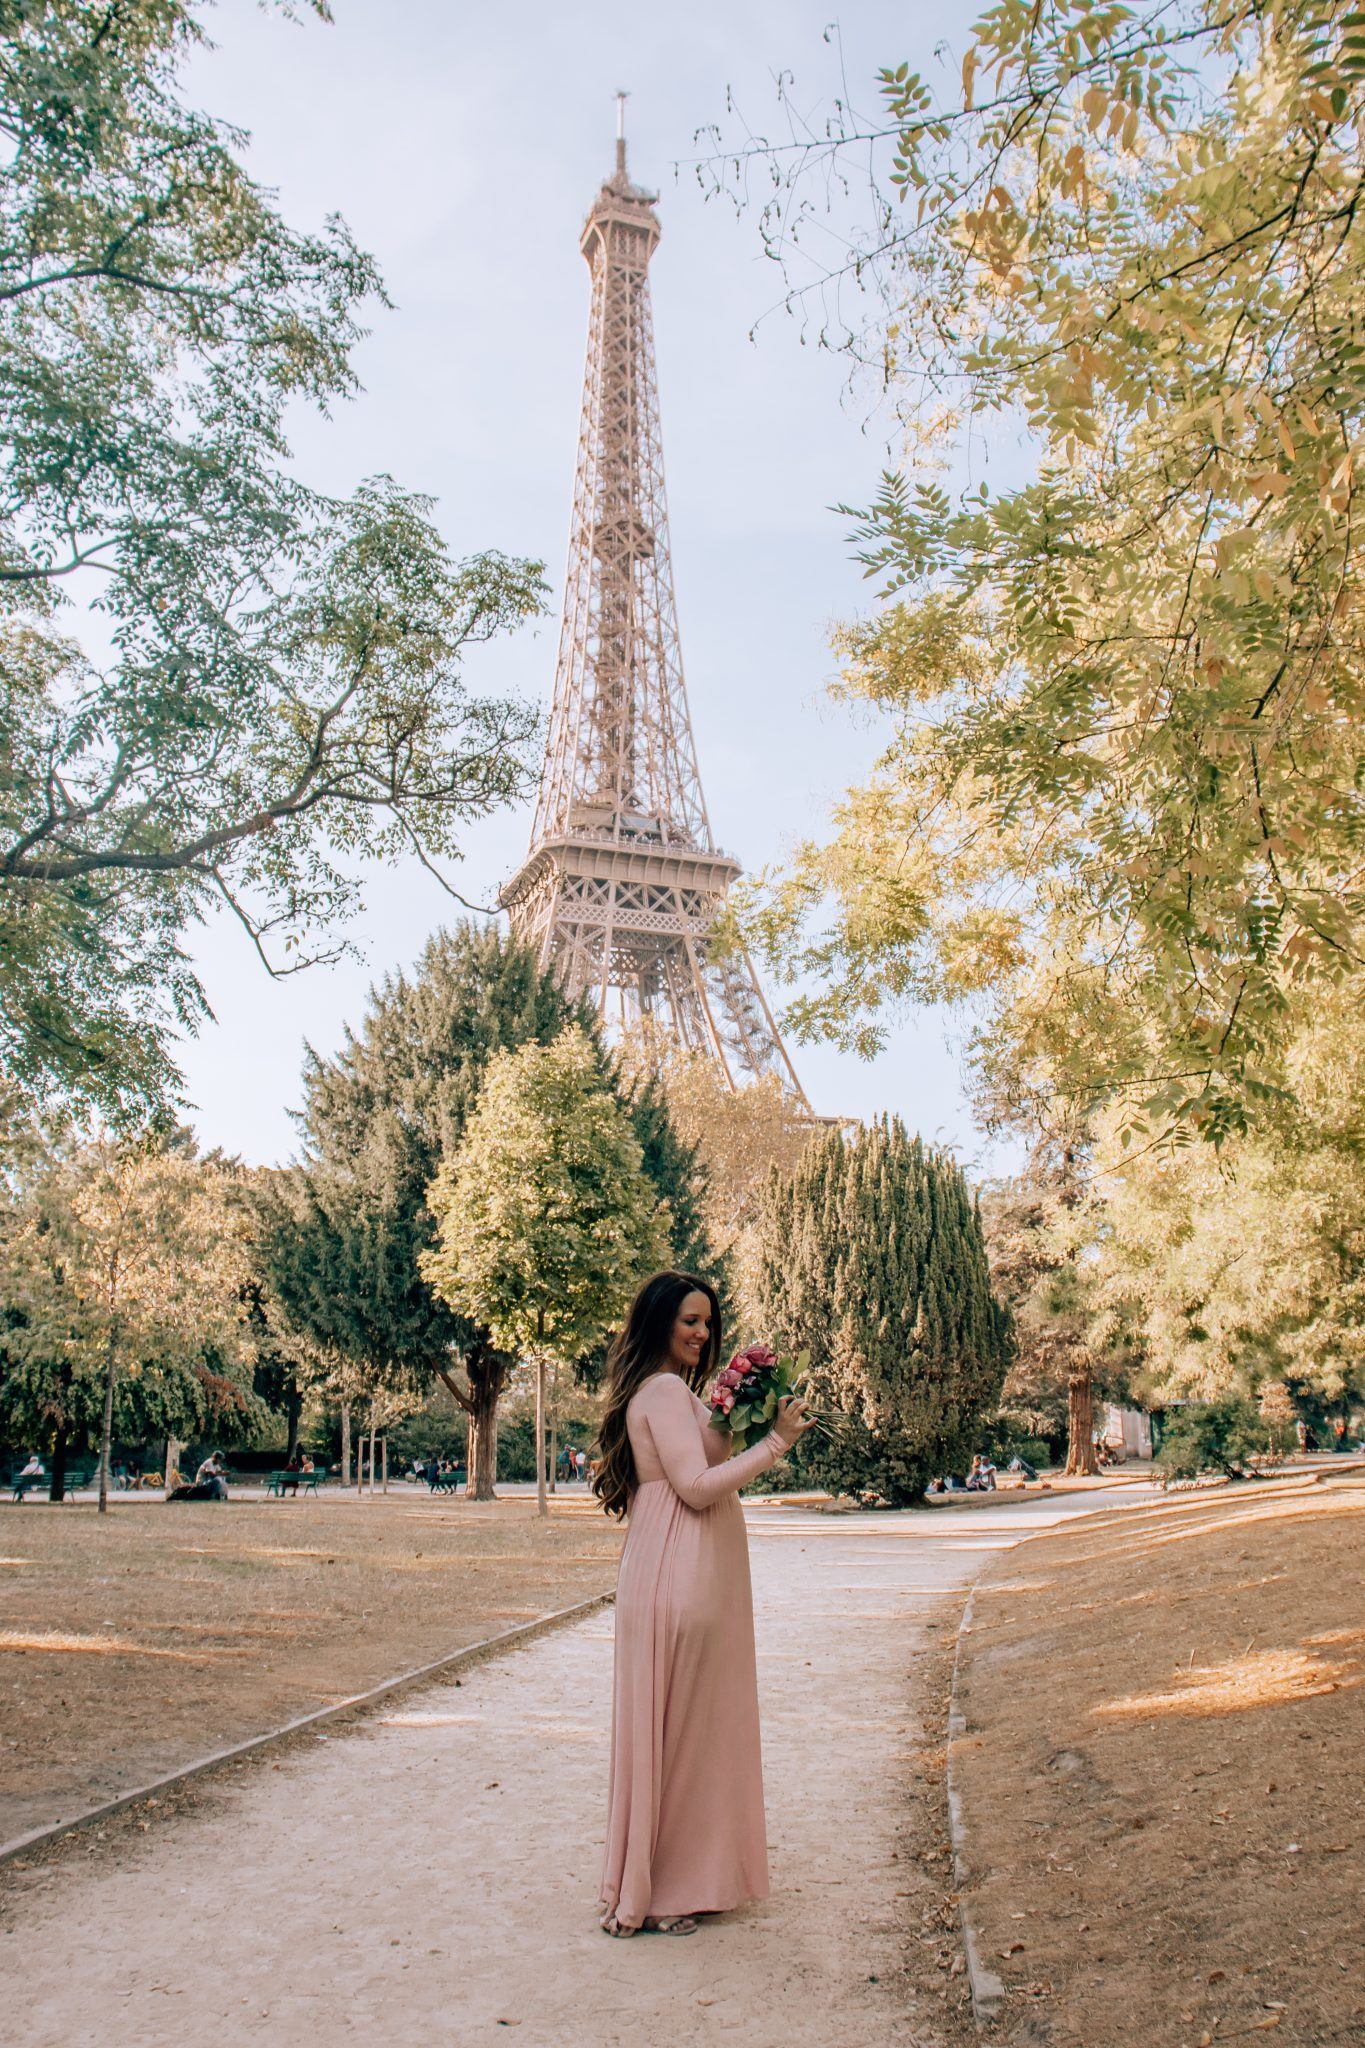 12 Best Photo Spots in Paris For Epic Instagram Shots - Champs de Mars